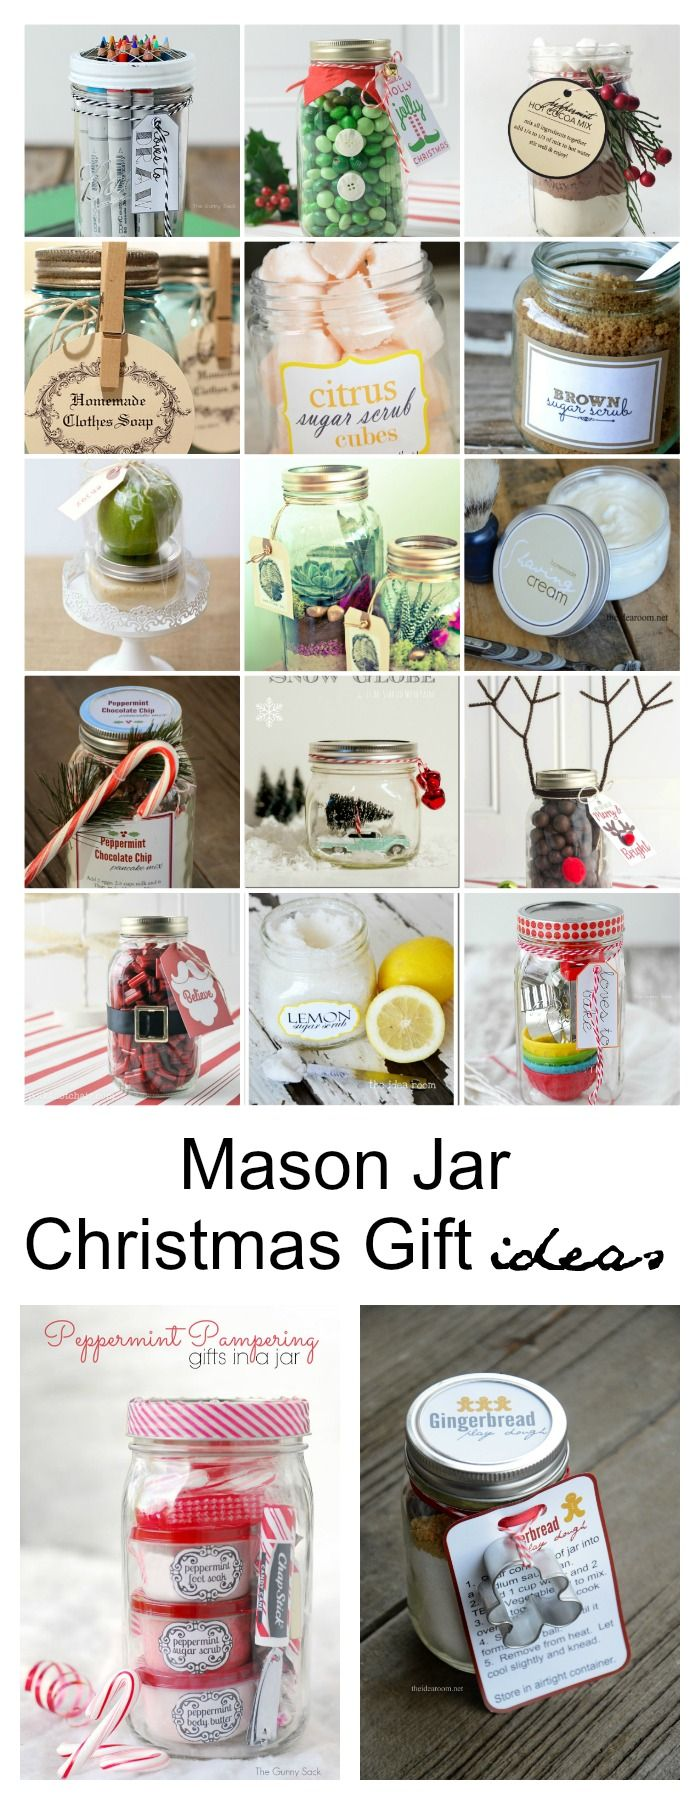 Christmas Gift In Jars If You Are Looking For Cheap Christmas Gift Ideas For Your Frie Christmas Jar Gifts Cheap Christmas Gifts Christmas Gifts For Coworkers